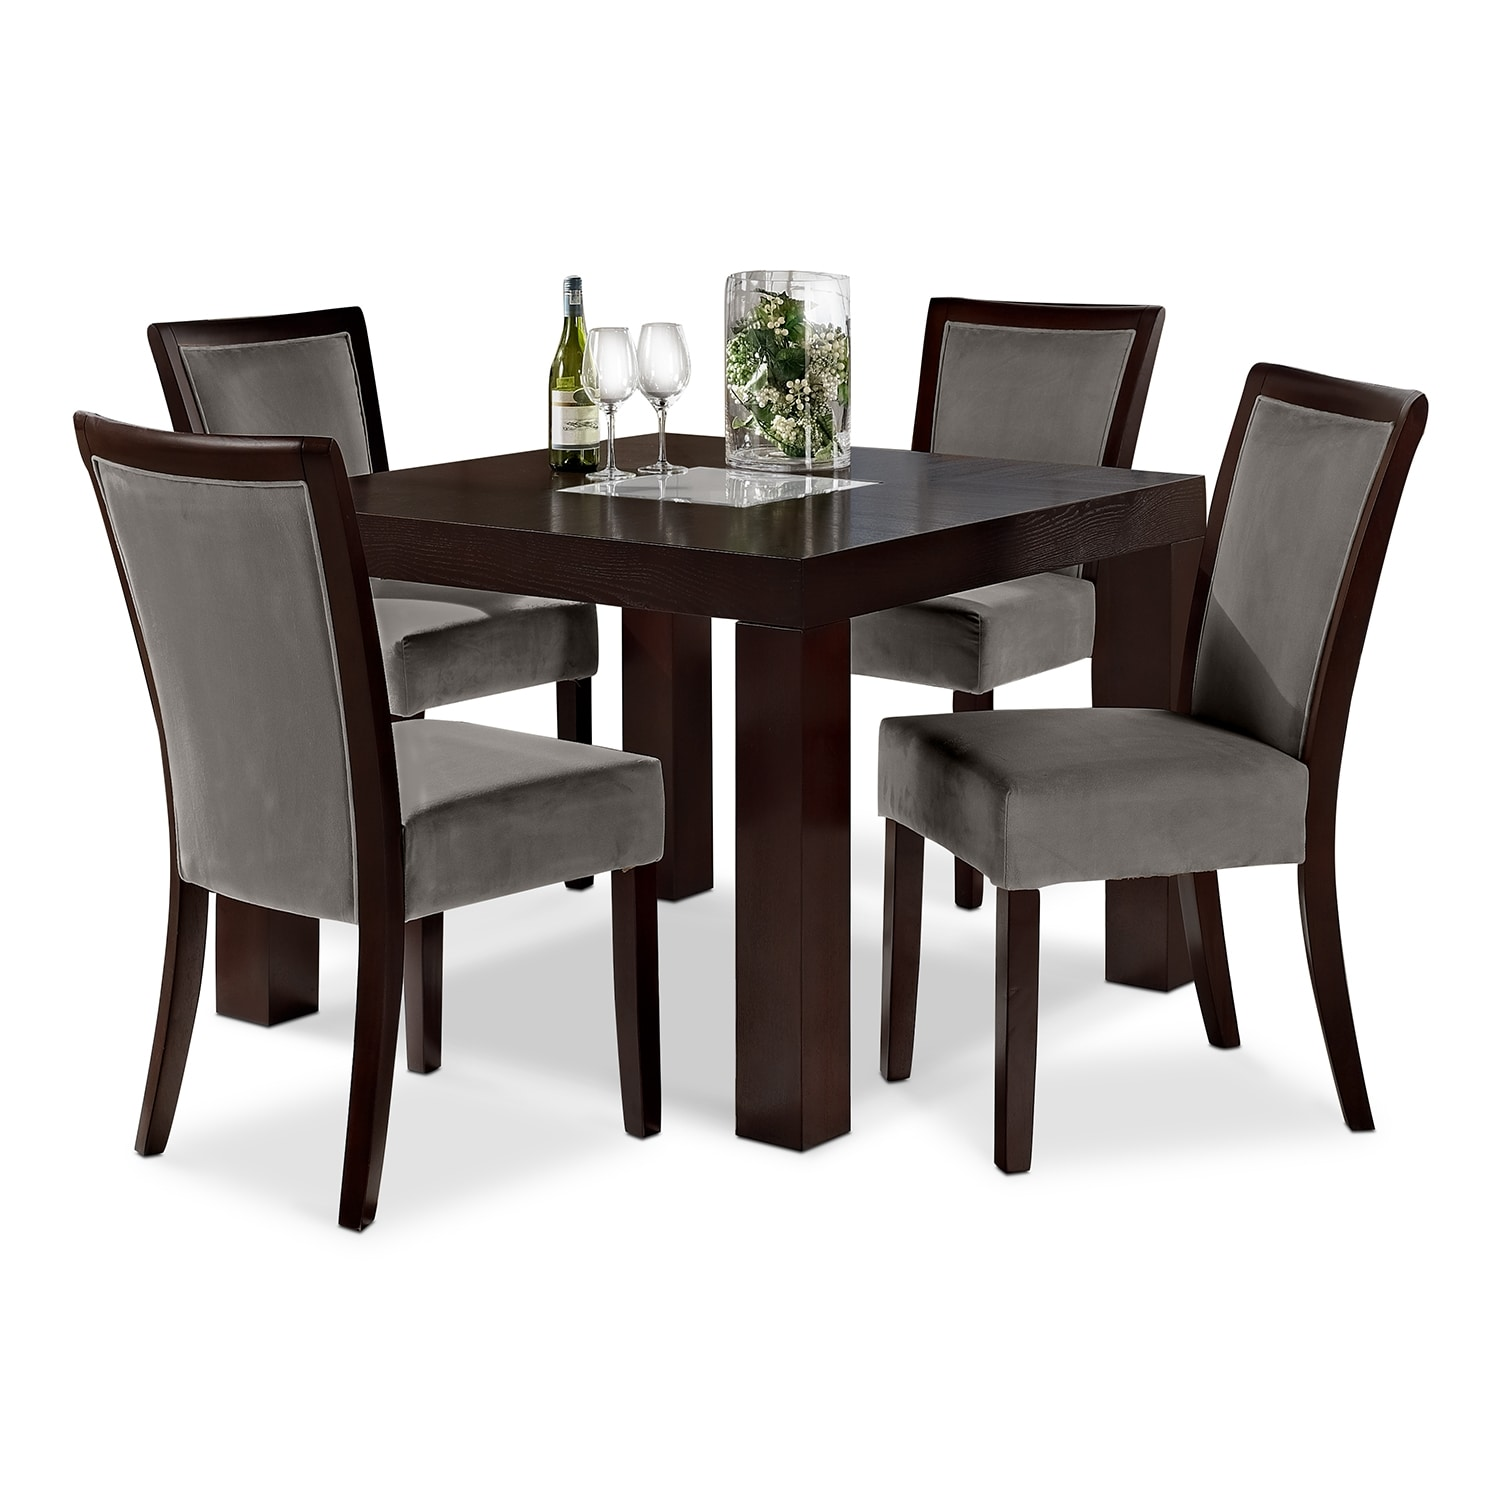 gray dining room 5 pc dinette 42 quot table value